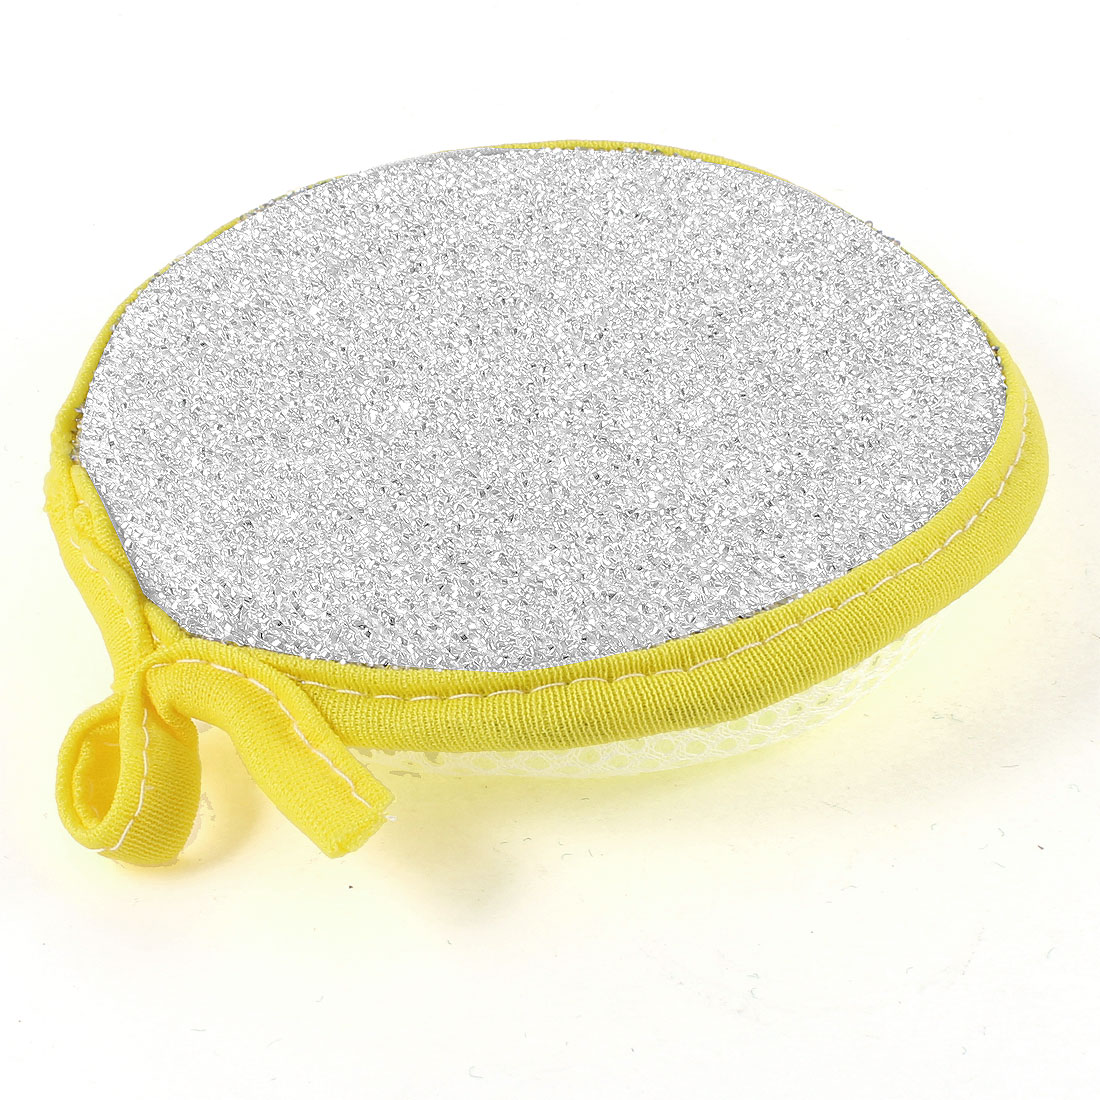 Silver Tone Plastic Surface White Mesh Net Sunflower Sponge Cleaning Pad